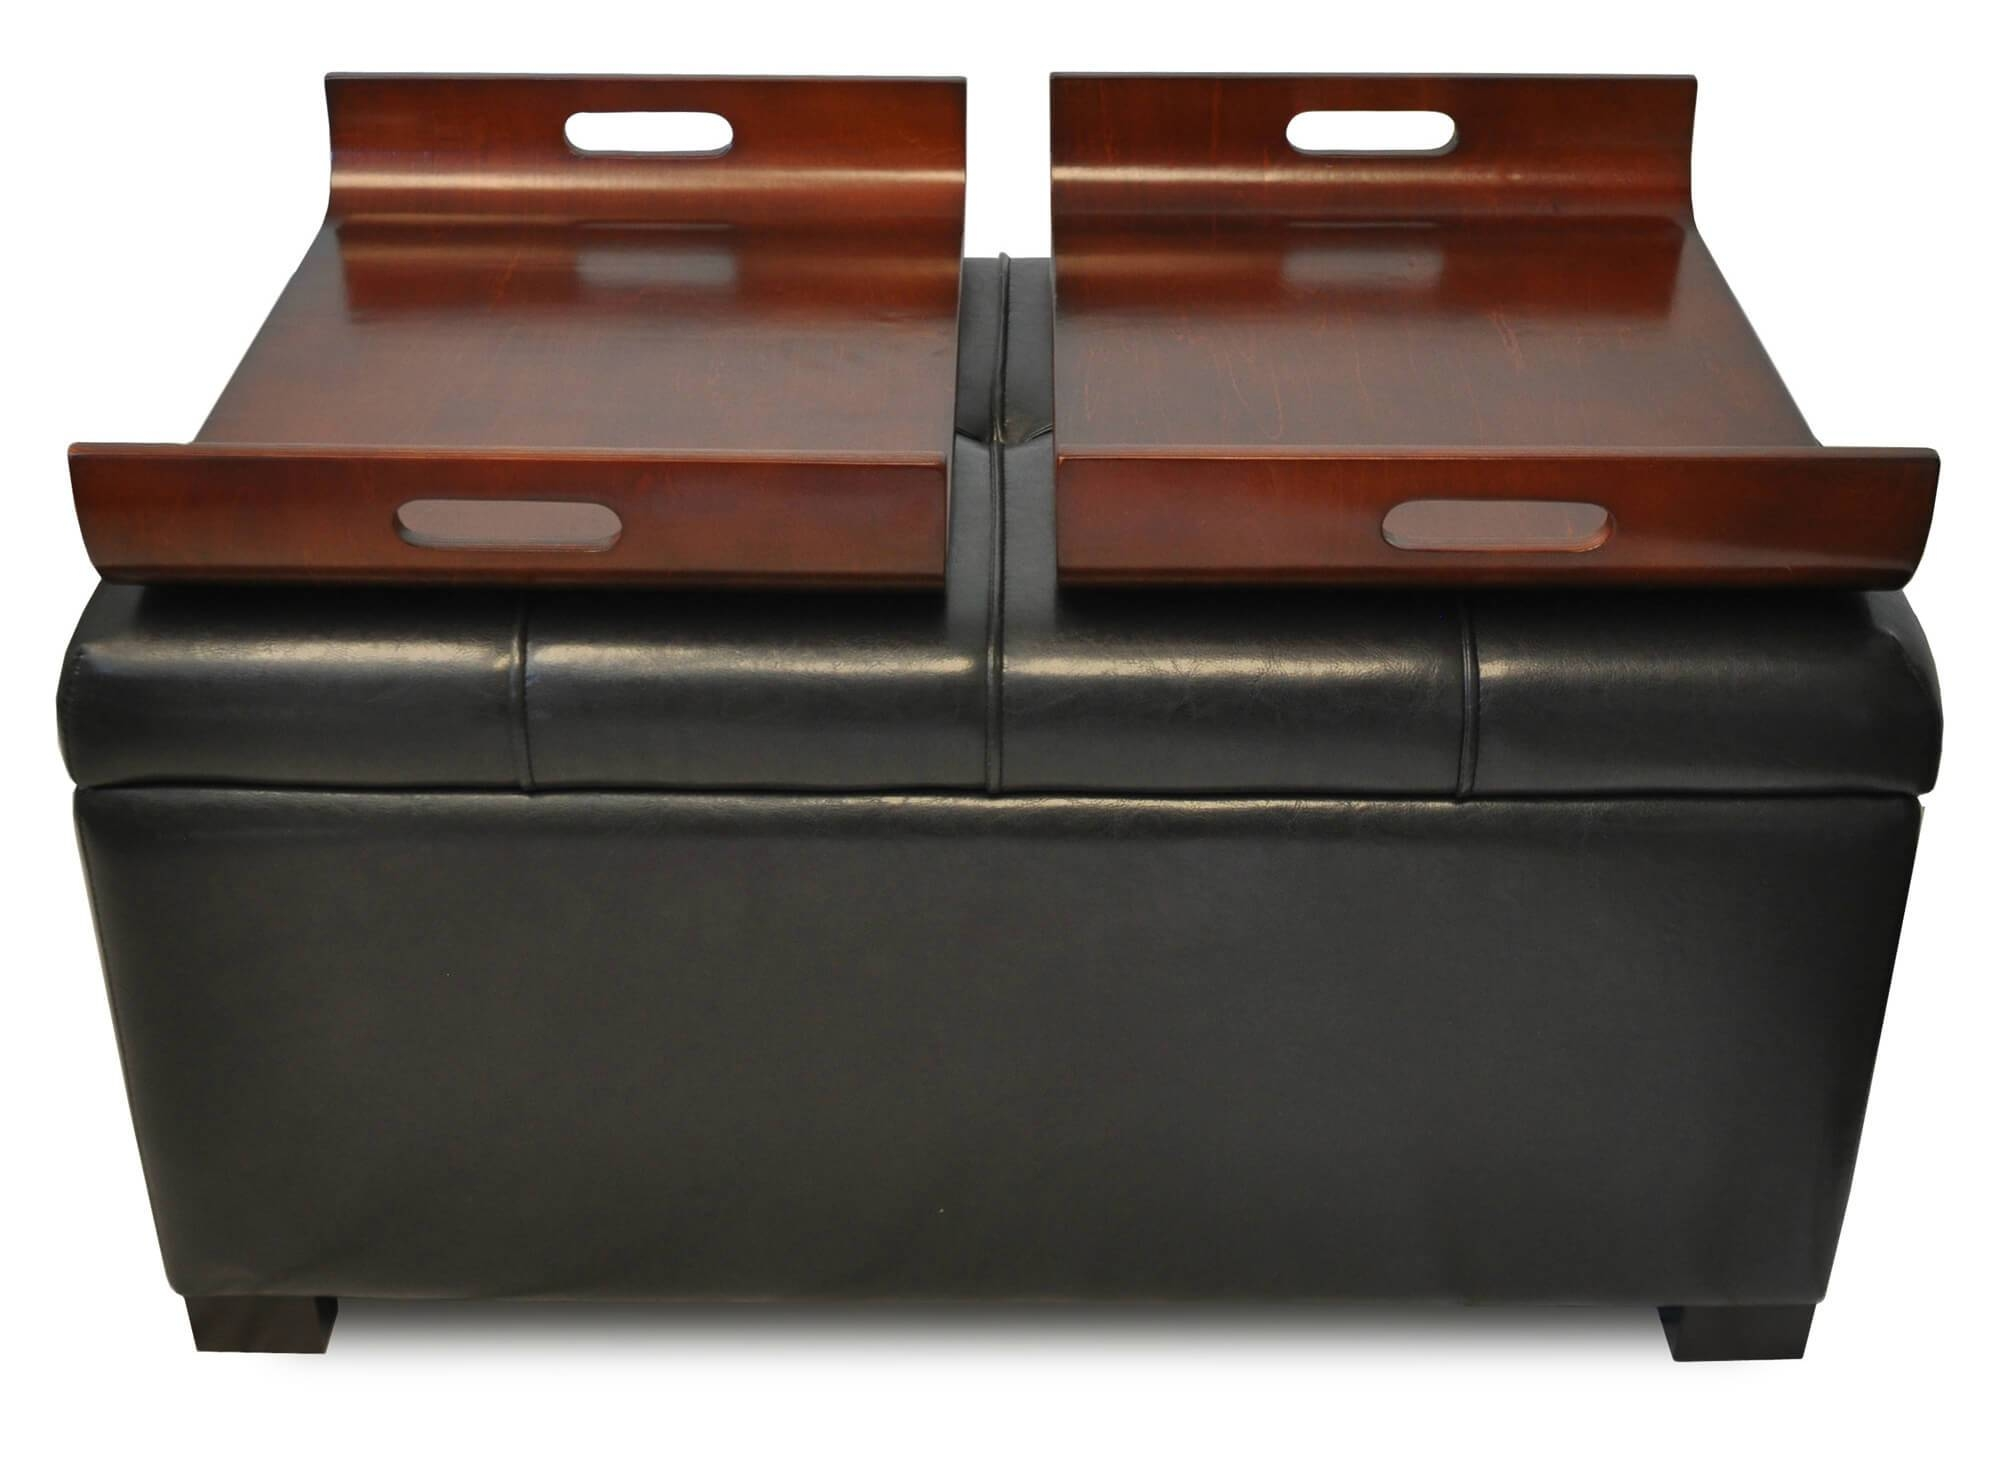 36 Top Brown Leather Ottoman Coffee Tables throughout Stylish Coffee Tables (Image 3 of 30)